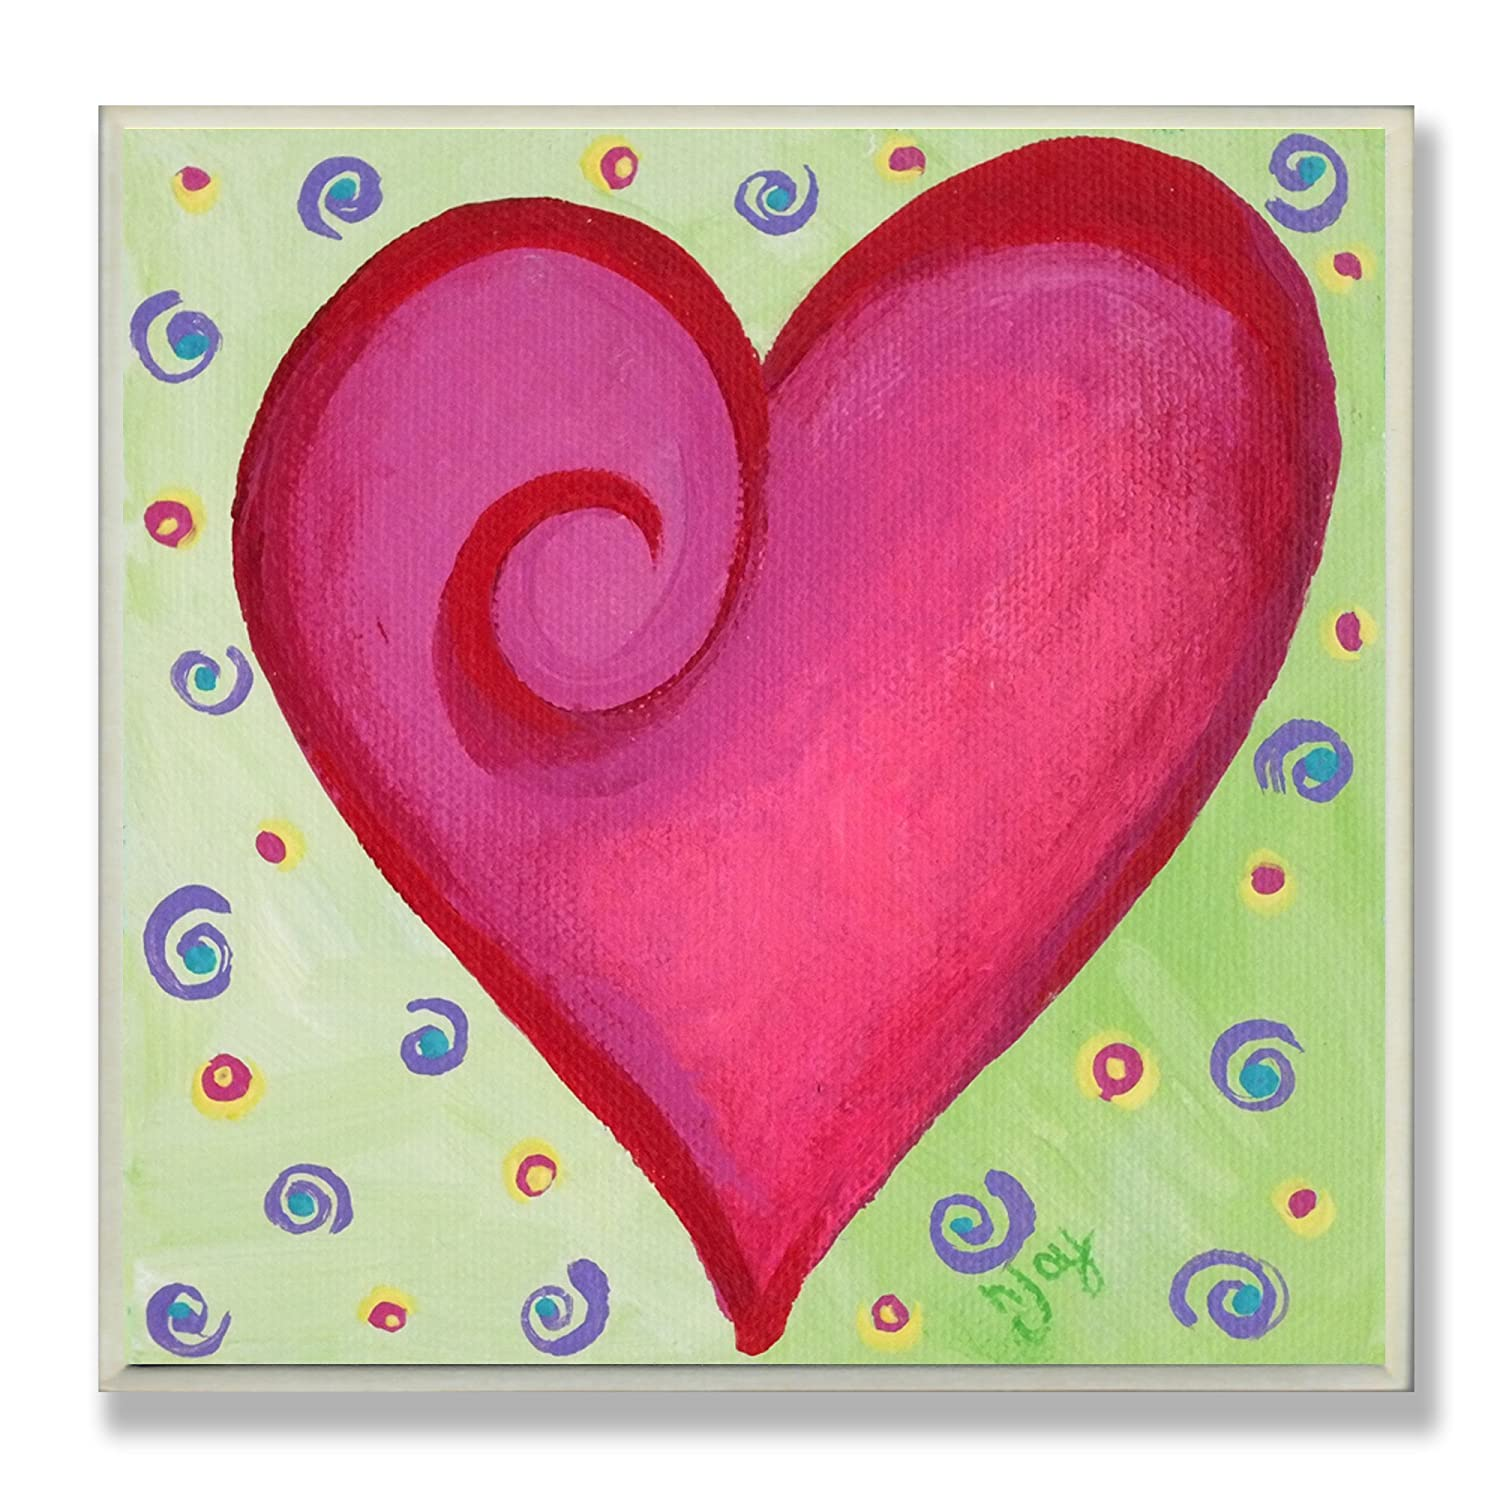 The Kids Room by Stupell Red Heart on Green Background Square Wall Plaque